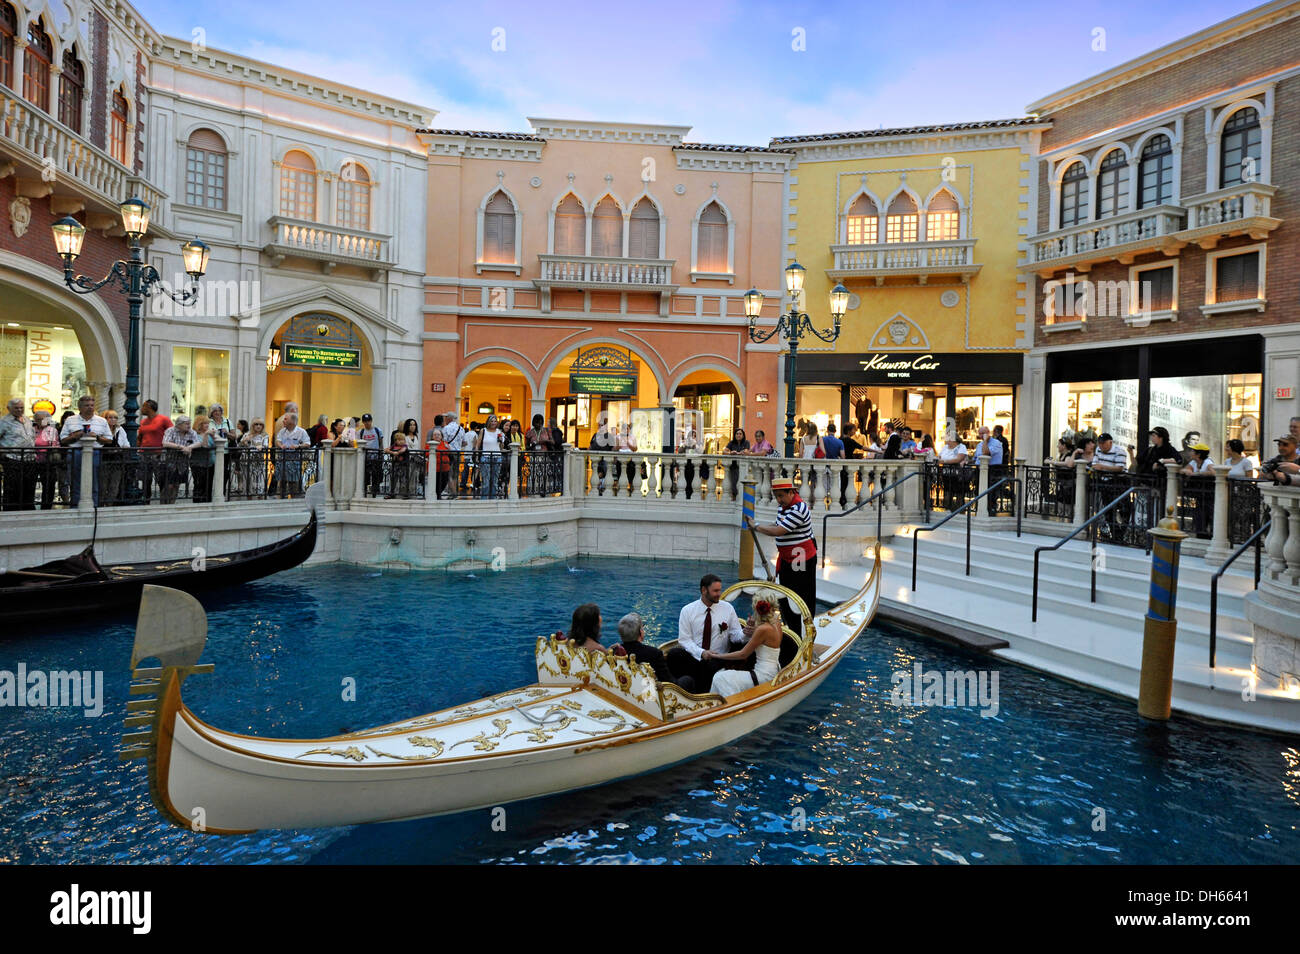 Tourists In A Replica Of Venetian Streets Under An Artificial Sky Wedding Gondola Ceremony Grand Canal